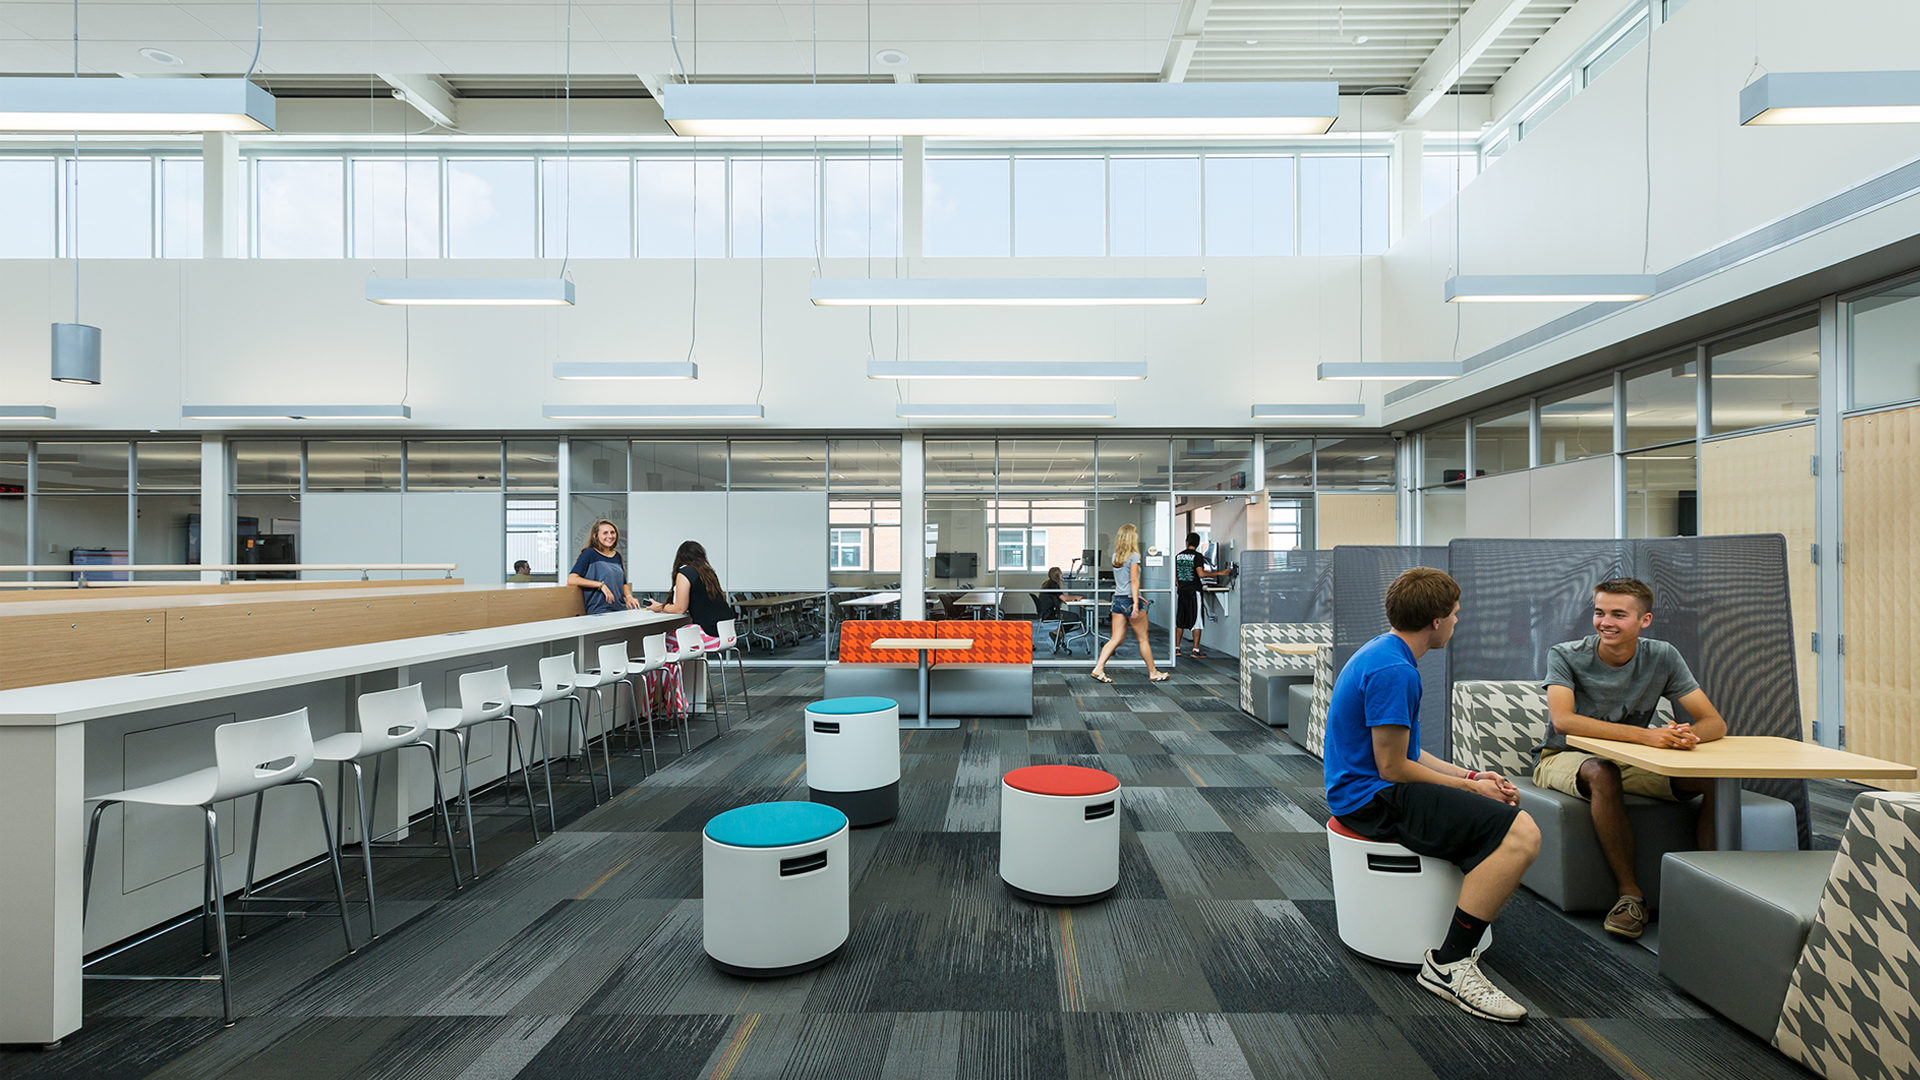 Alexandria High School Interior Common Study Area with Booths and Tables